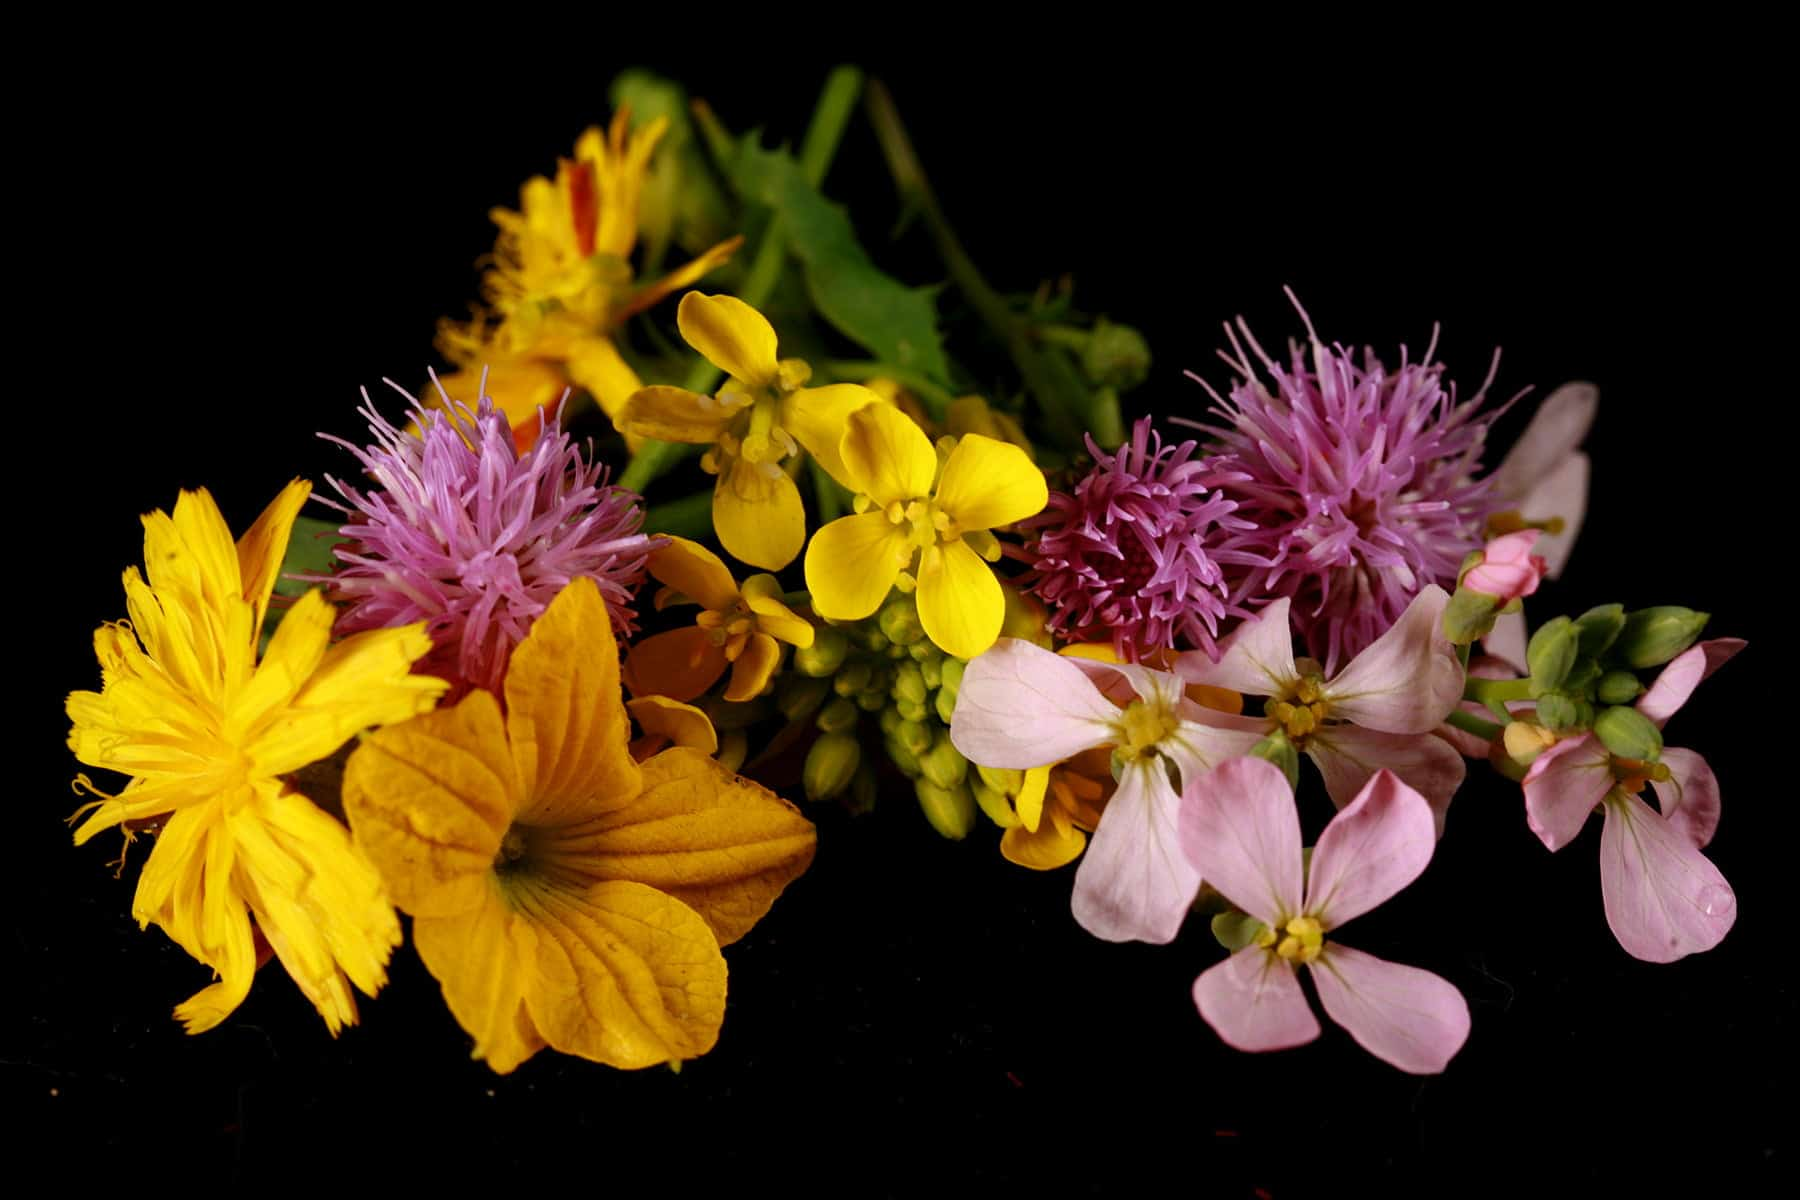 A small bunch of random wildflowers, against a black background.